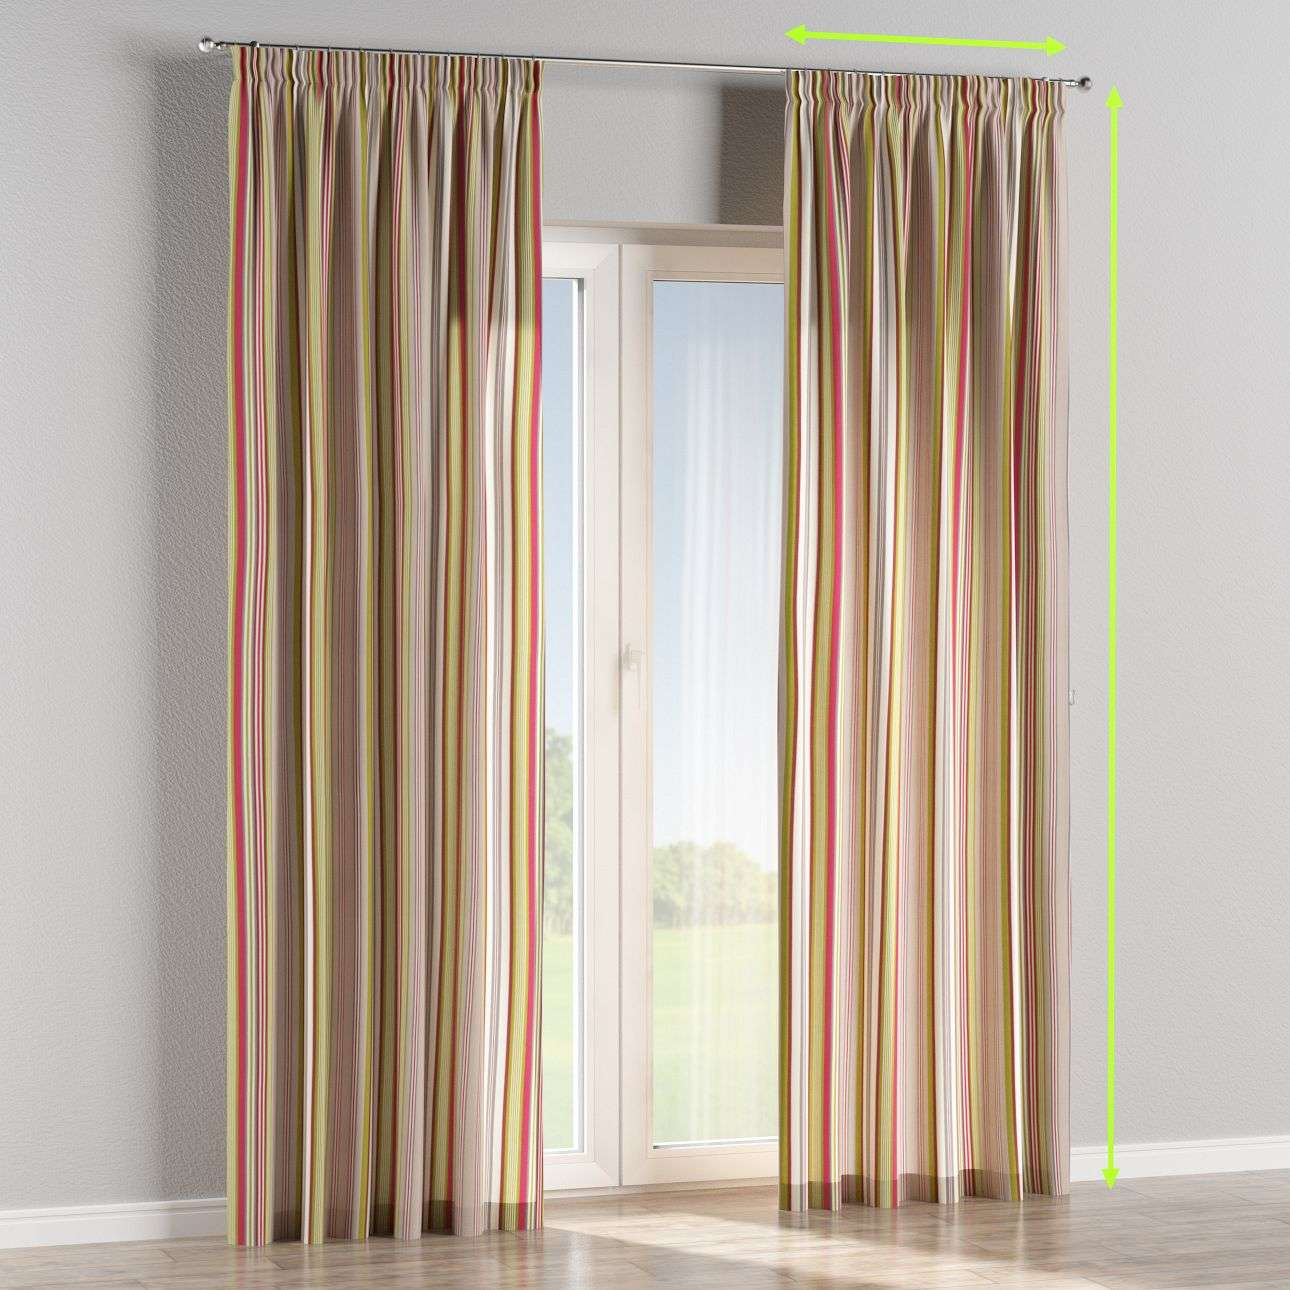 Pencil pleat lined curtains in collection Flowers, fabric: 311-16